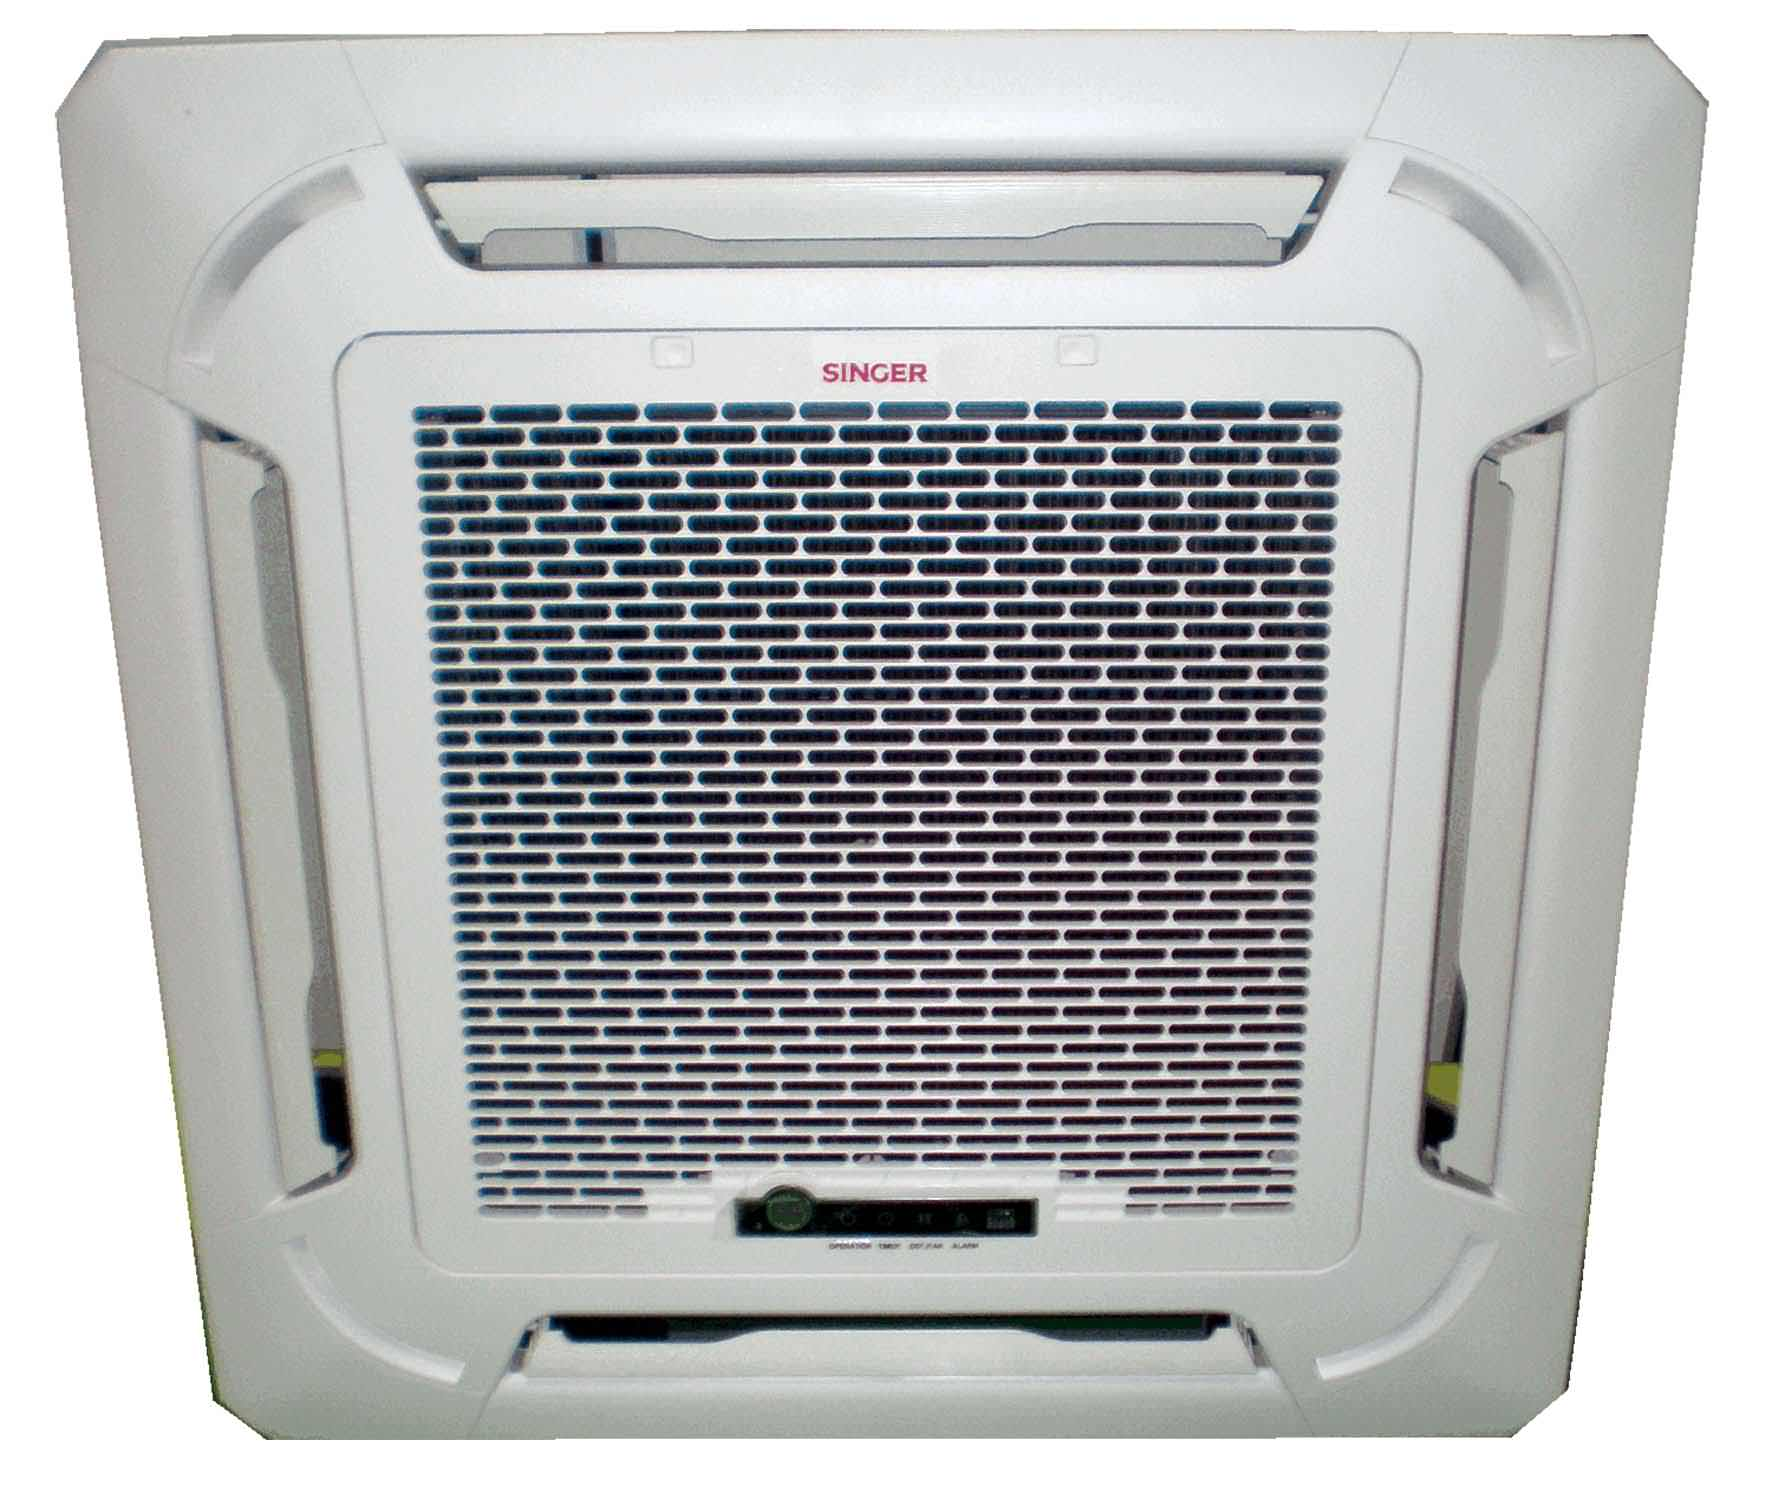 Aircond Singer Malaysia Split Type Air Conditioner Wiring Diagram 3 Phase Cassette 20hp